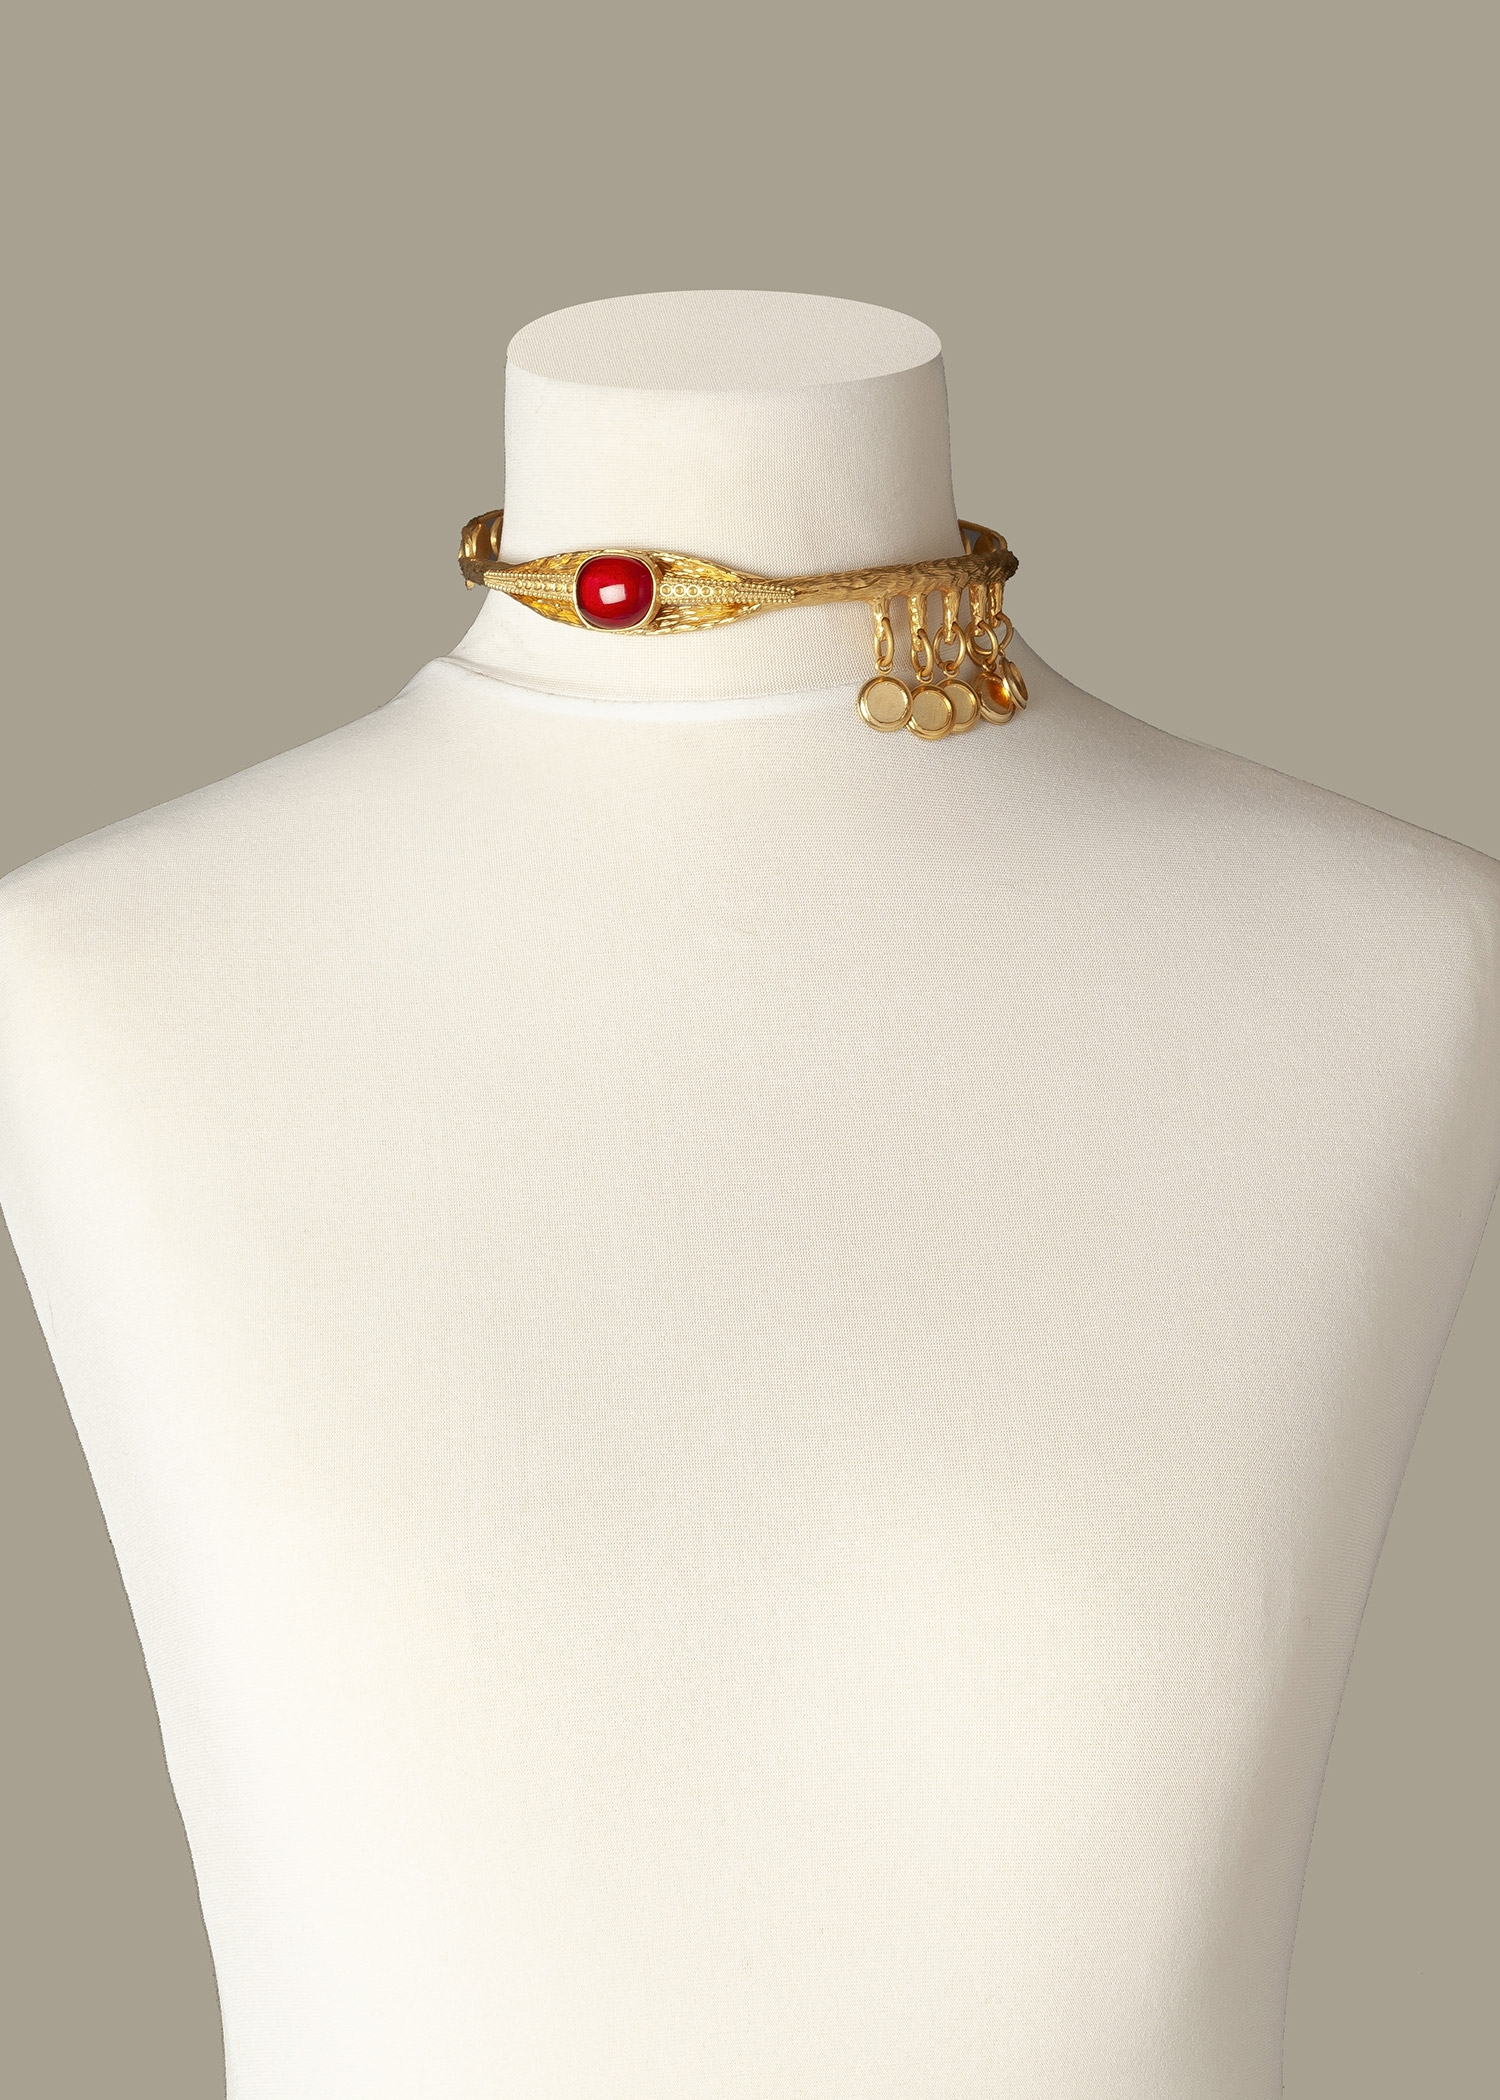 Ruby Eye Luxury Necklace by Sonia Petroff on curated-crowd.com